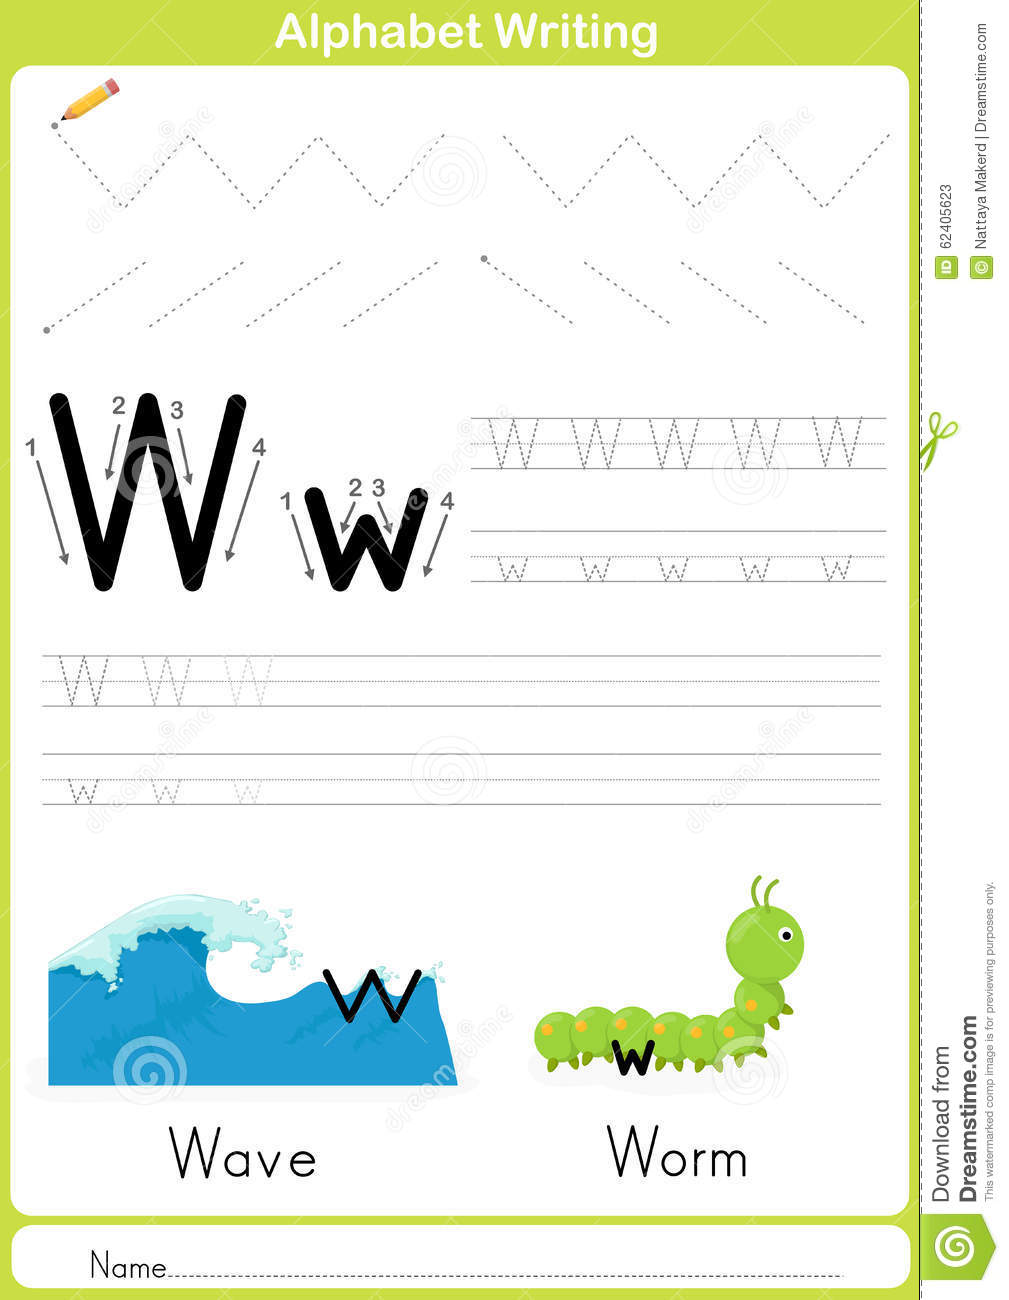 Alphabet A-Z Tracing Worksheet, Exercises For Kids - A4 ...